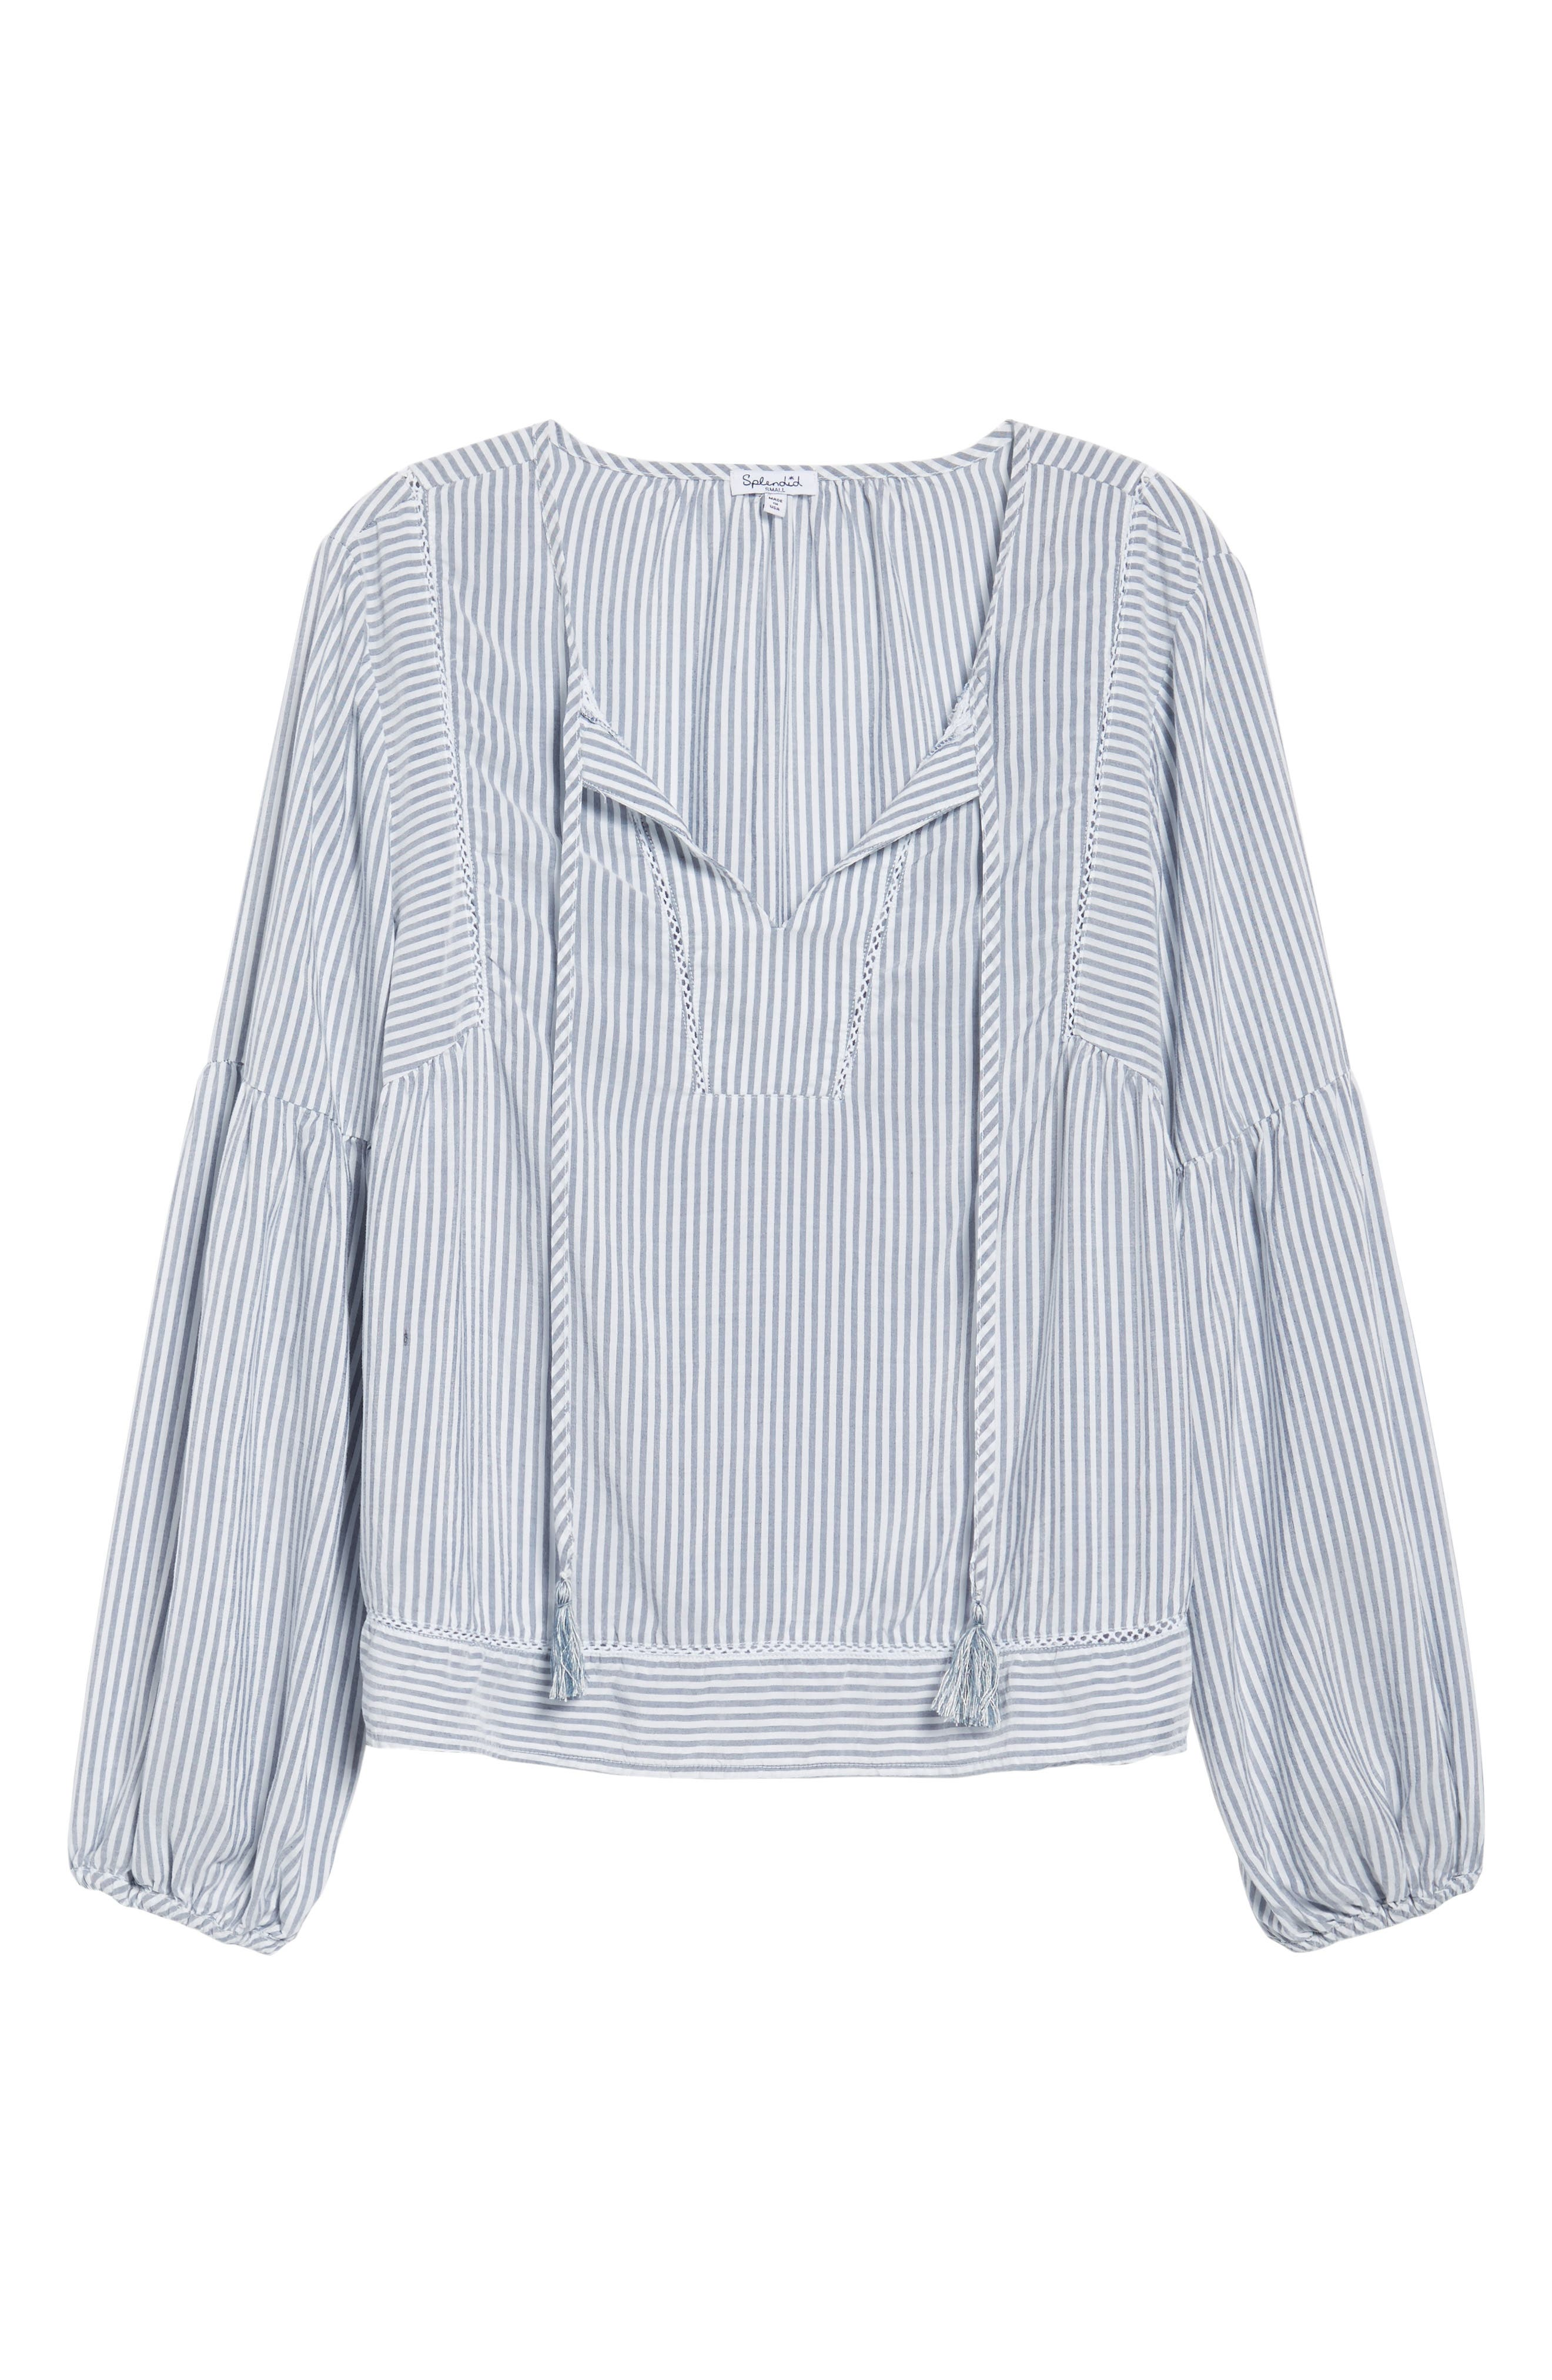 Tassel Shirt,                             Alternate thumbnail 6, color,                             MED WASH